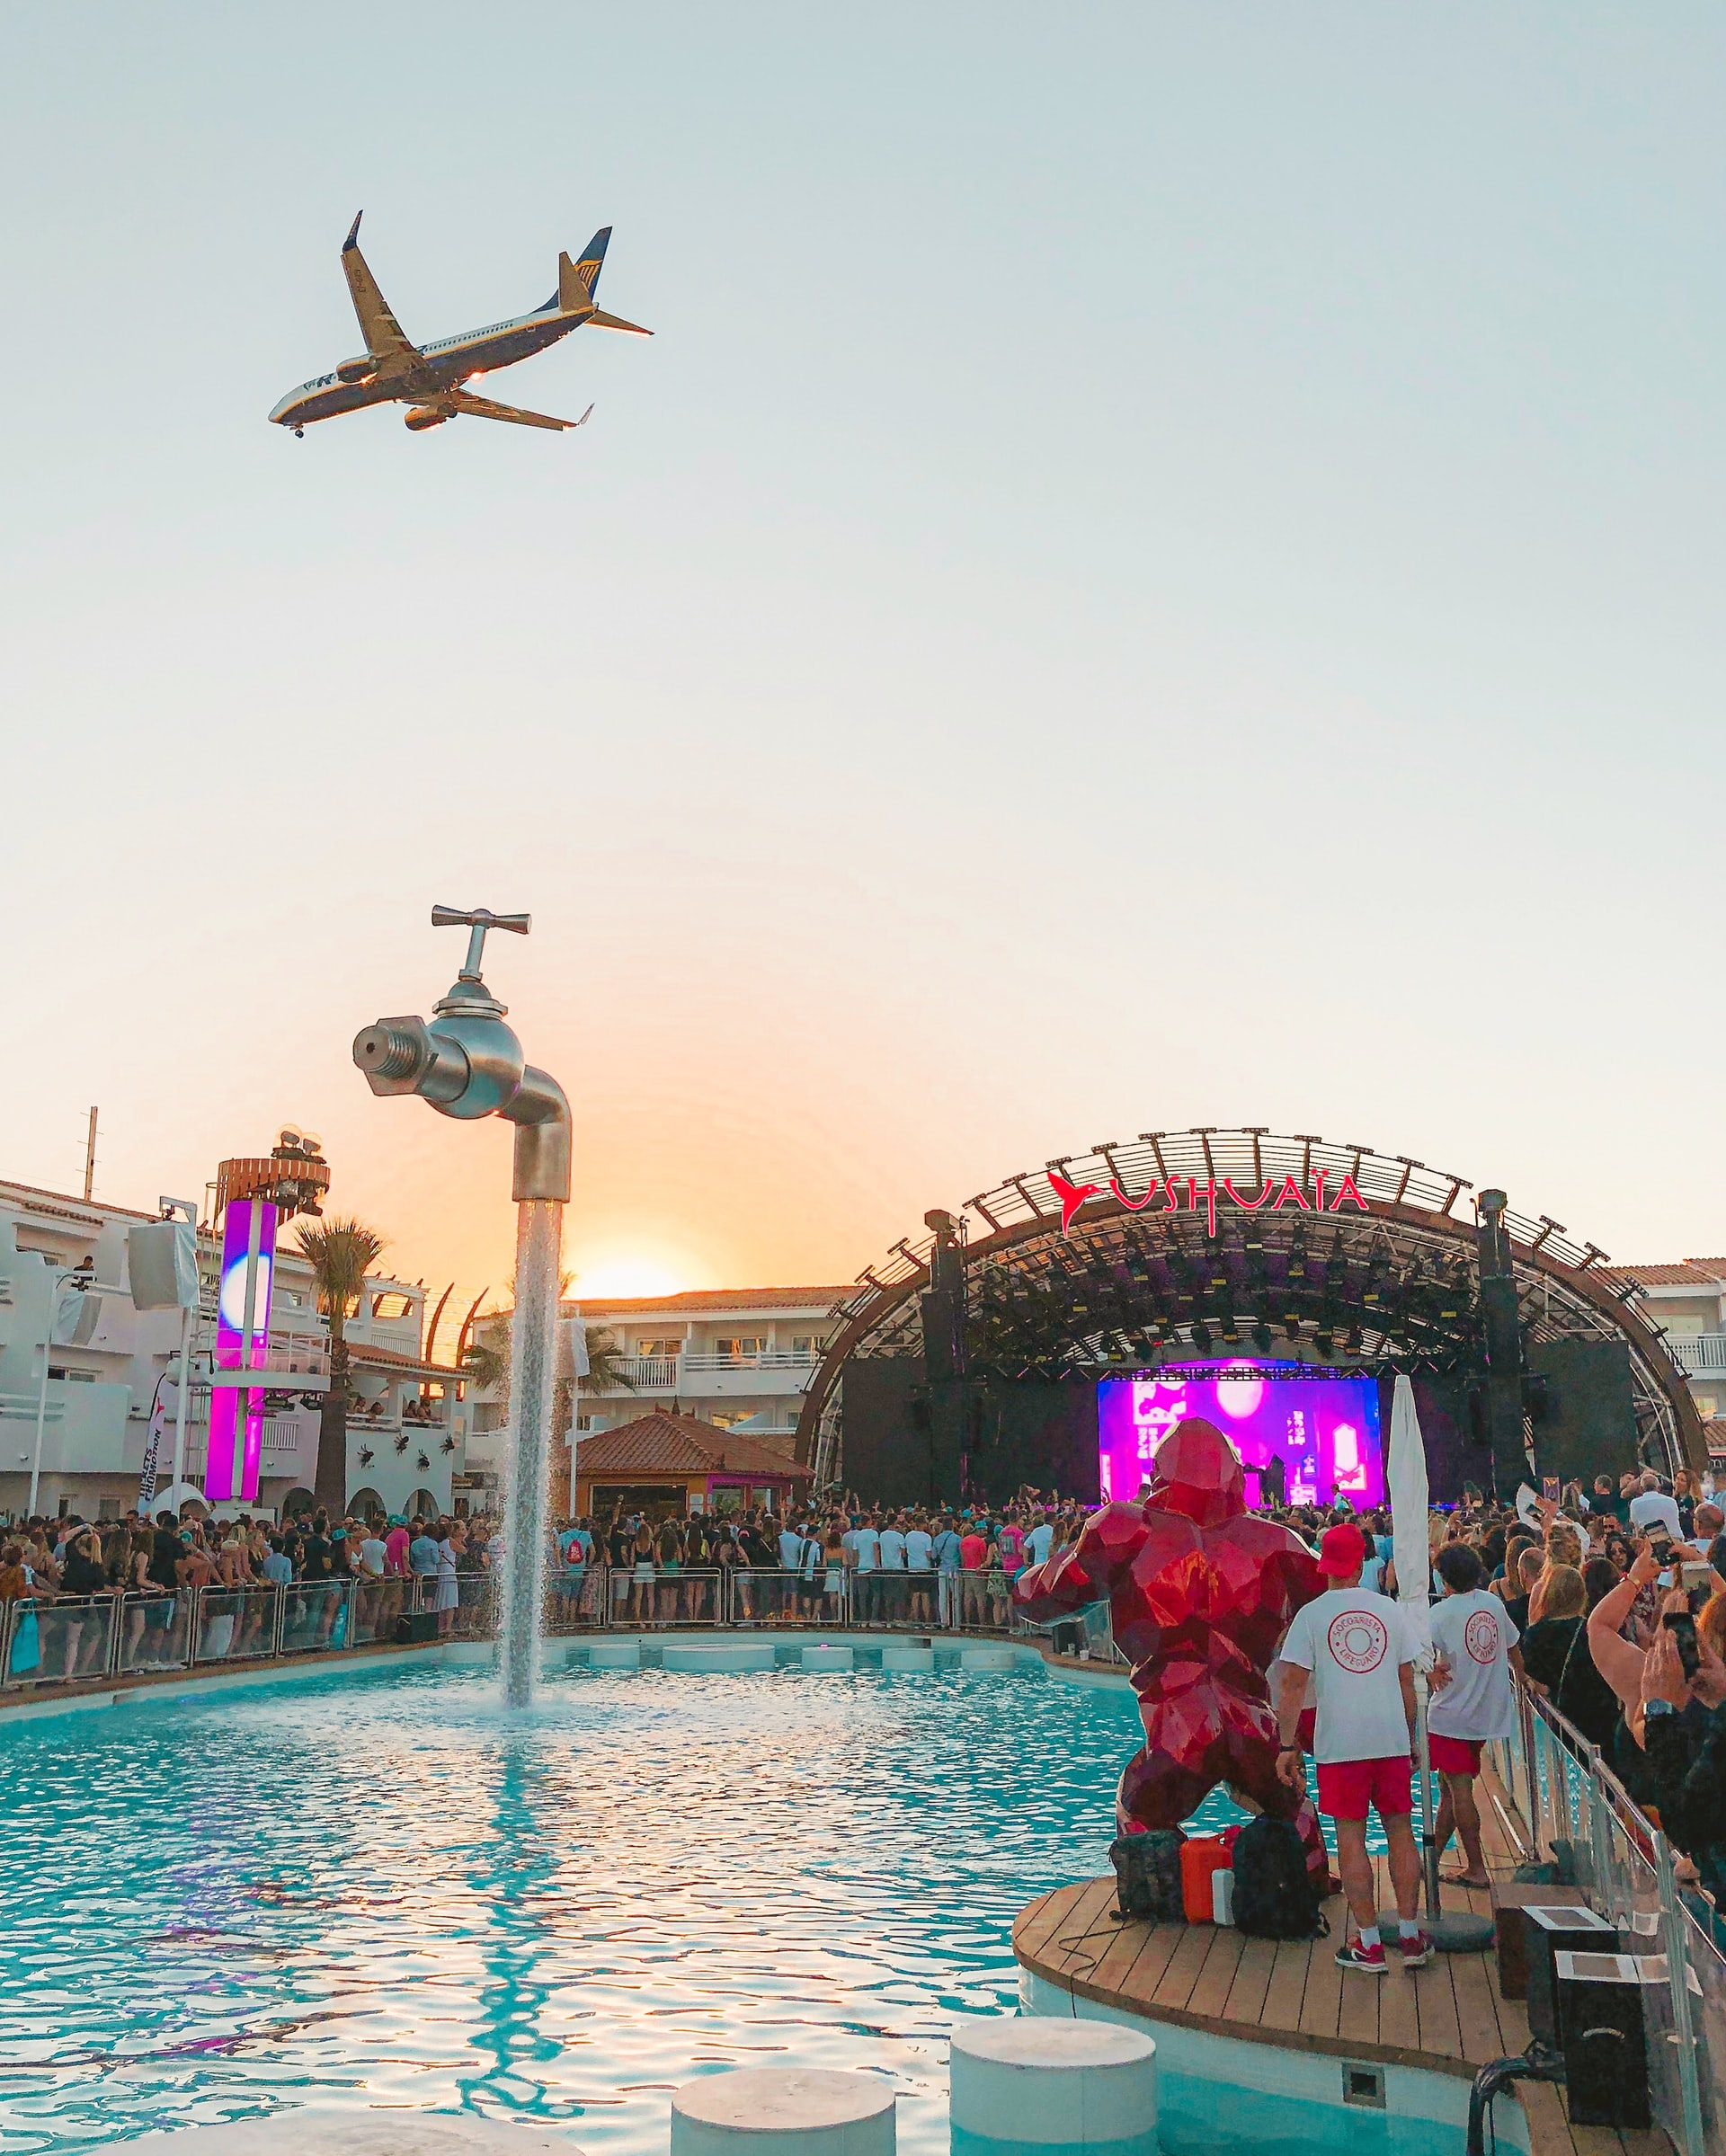 The stunning Mediterranean islands Party on as the sun rises in Ibiza